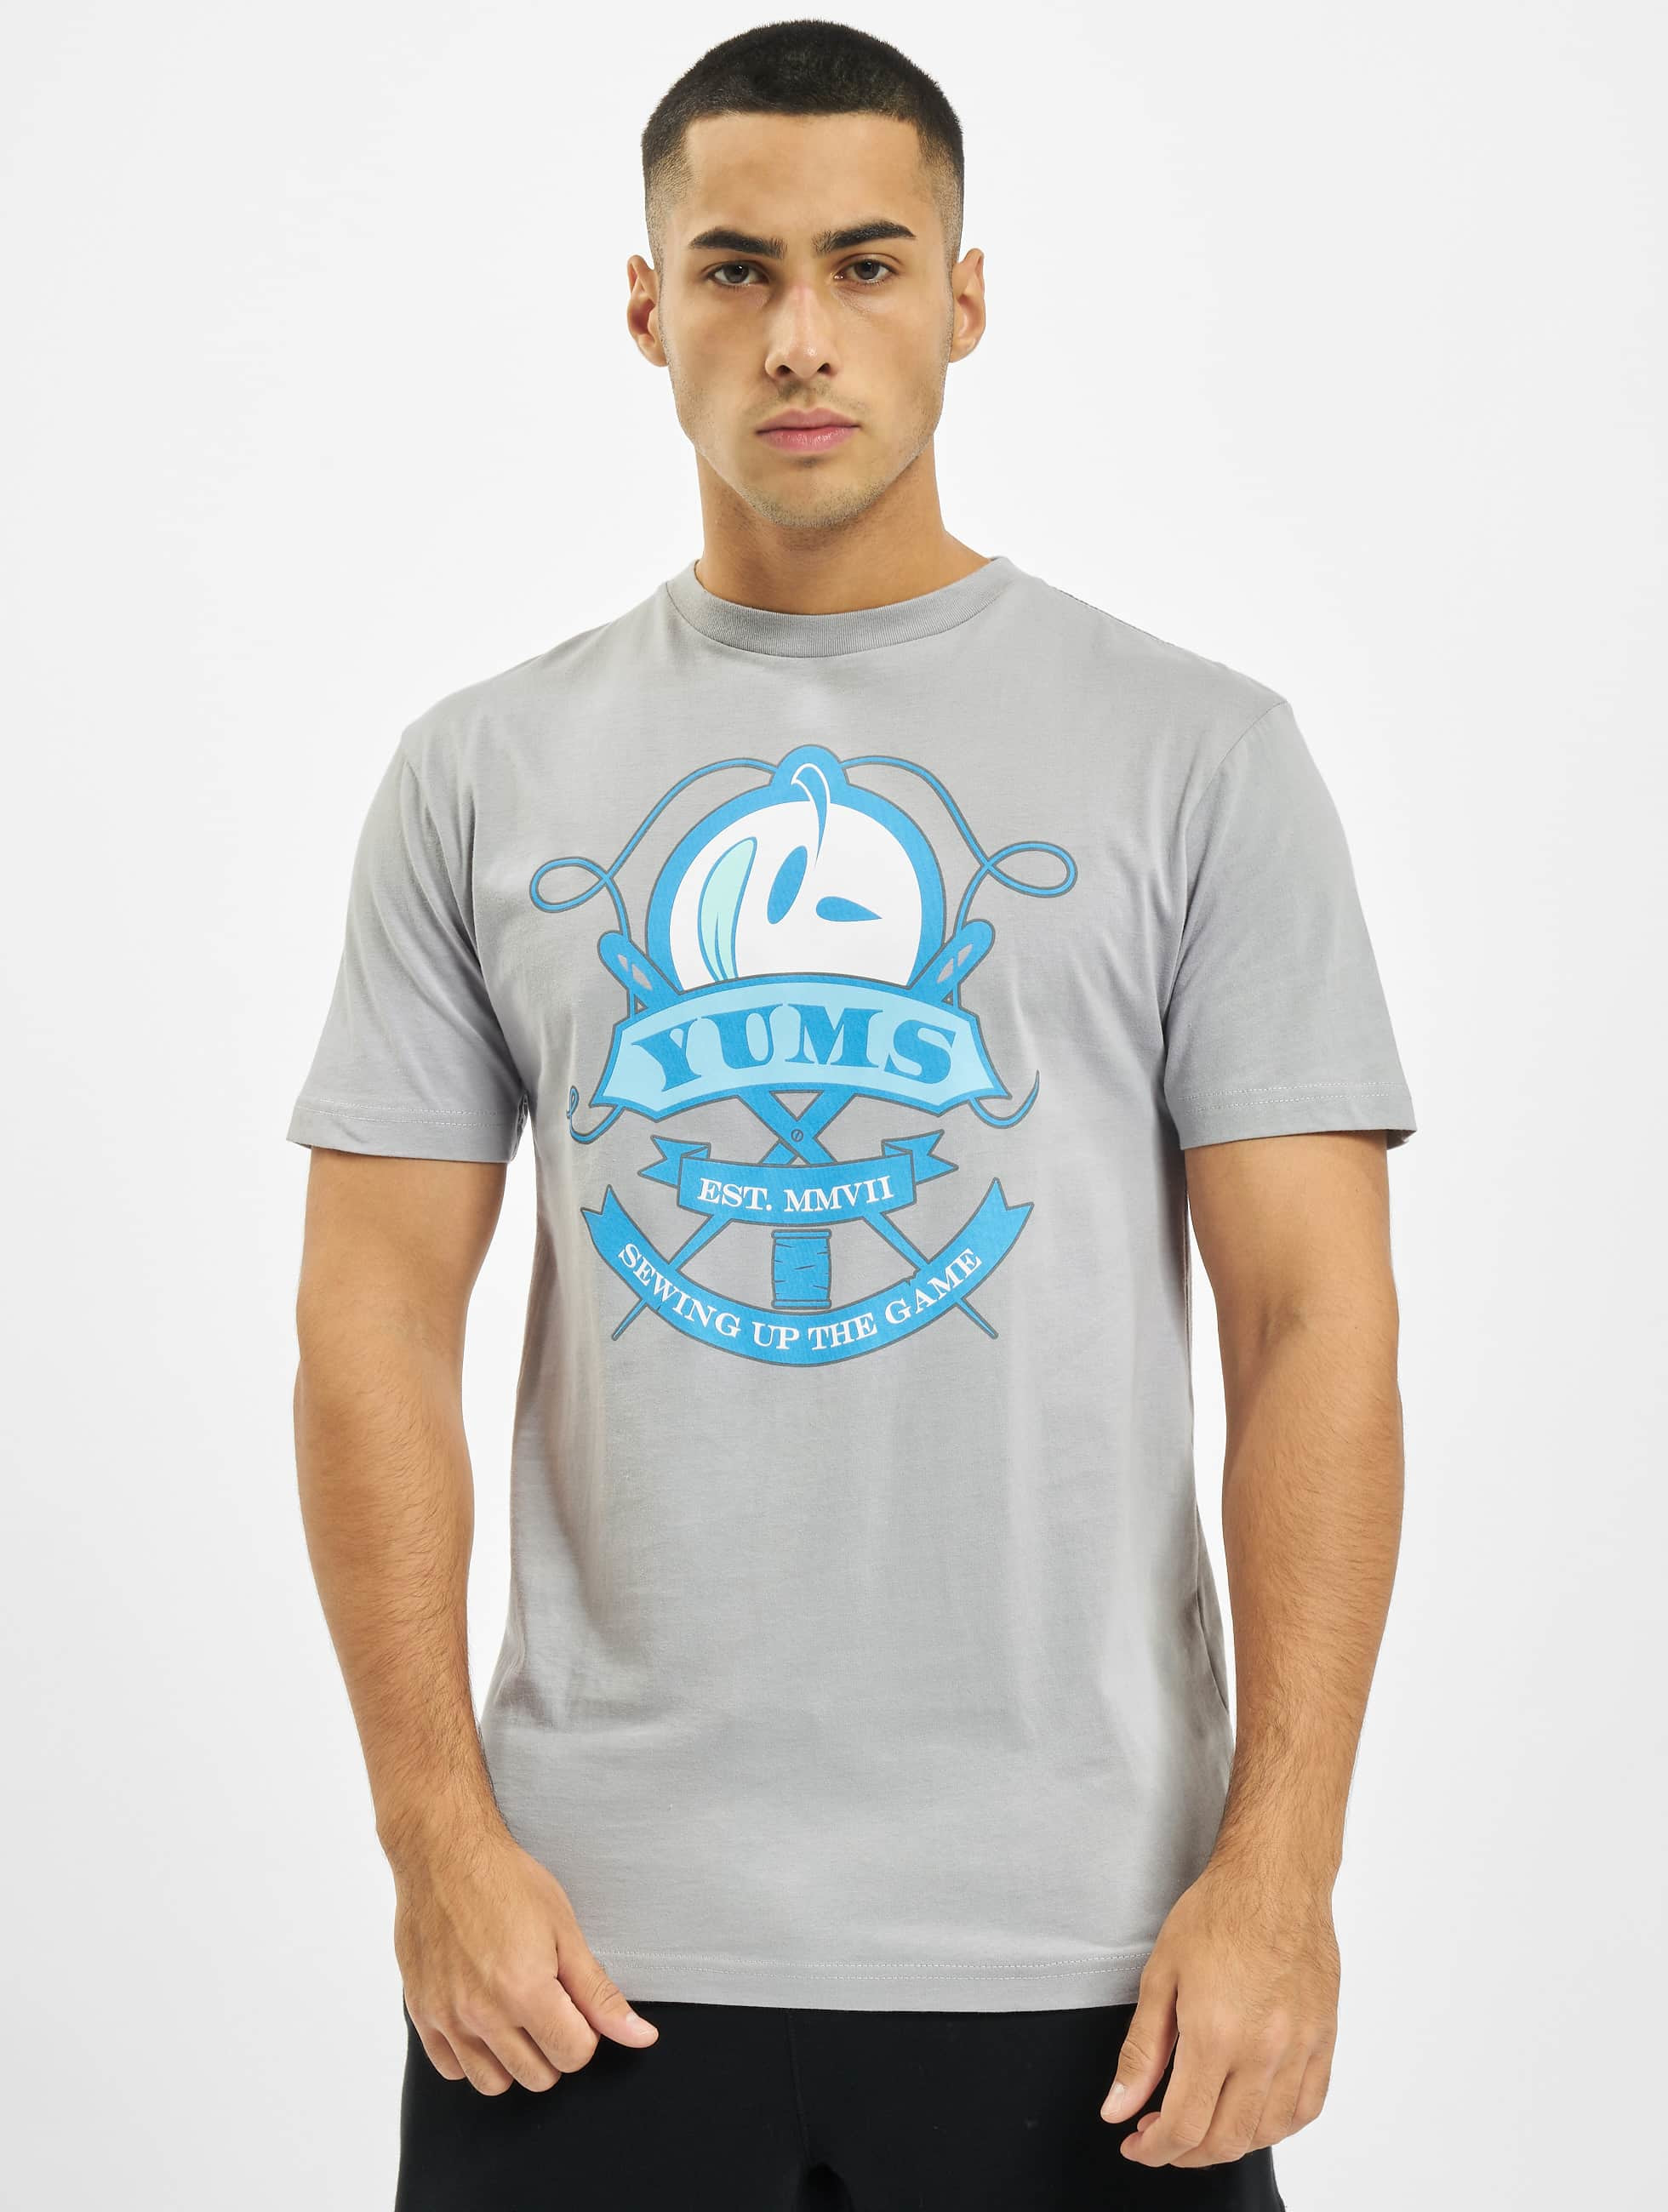 Yums-Uomini-Maglieria-T-shirt-Sew-Up-Game